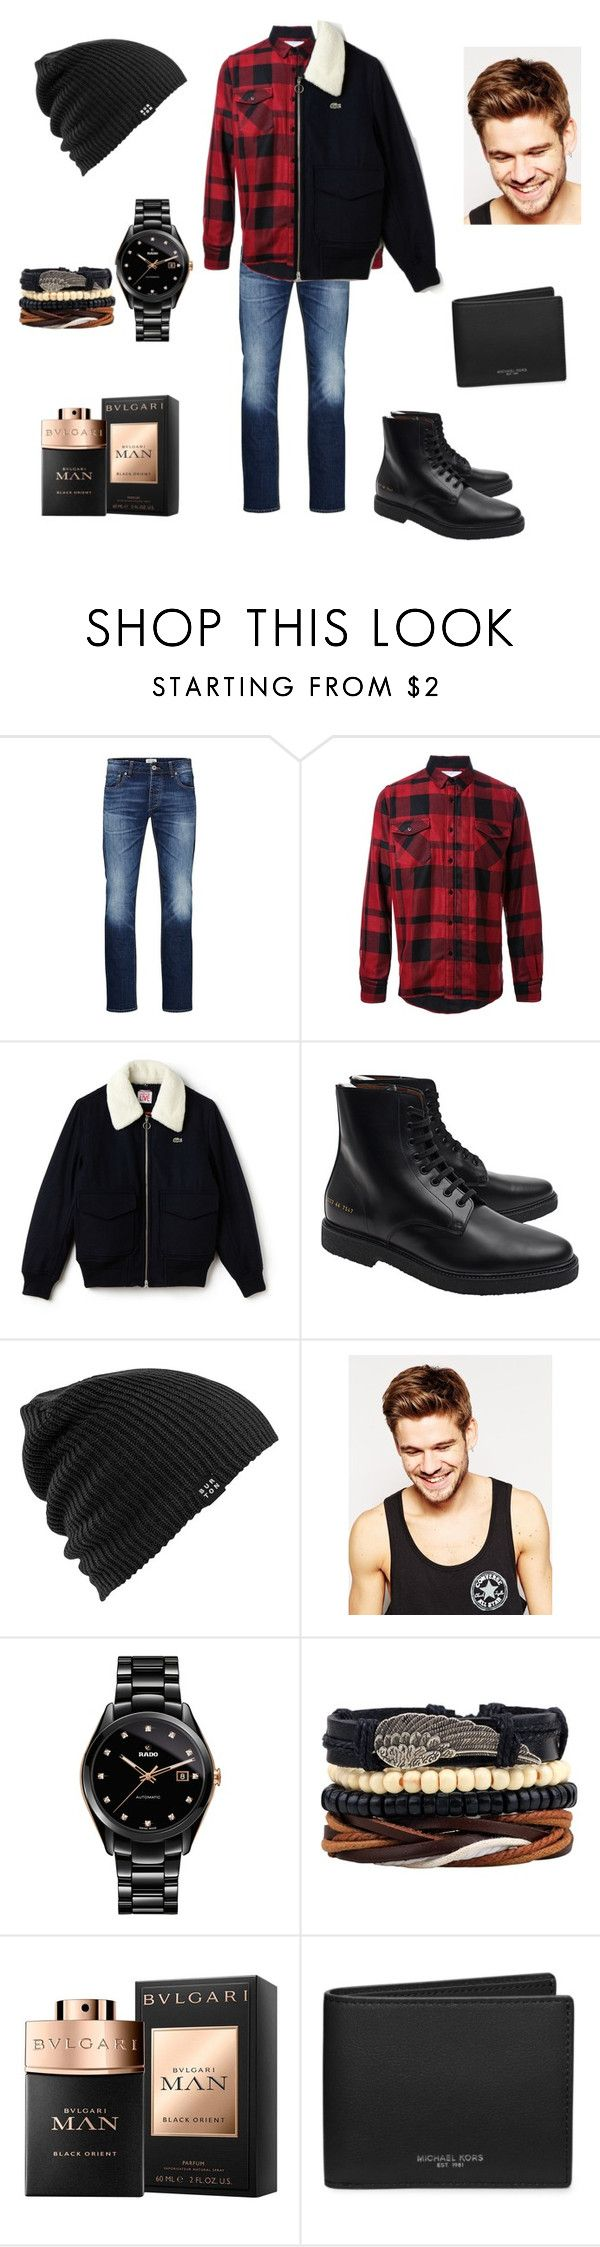 """""""Untitled #408"""" by cuevas-stefanny ❤ liked on Polyvore featuring Jack & Jones, Sacai, Lacoste, Common Projects, Burton, Toni&Guy, Rado and Michael Kors"""